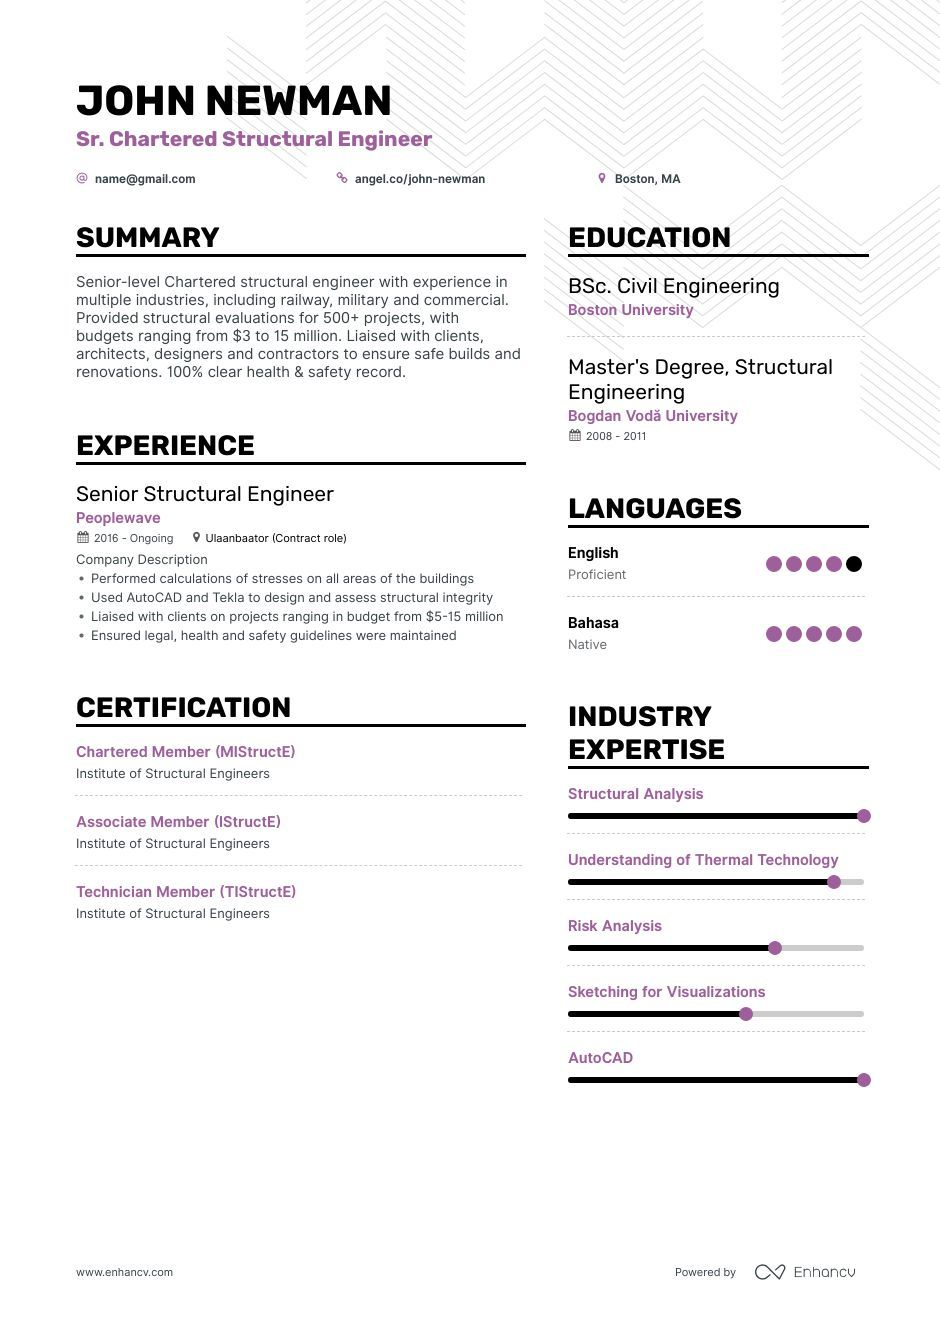 Structural Engineer Resume Ultimate Guide For 2019 6 Examples Structural Engineering Resume Examples Engineering Resume